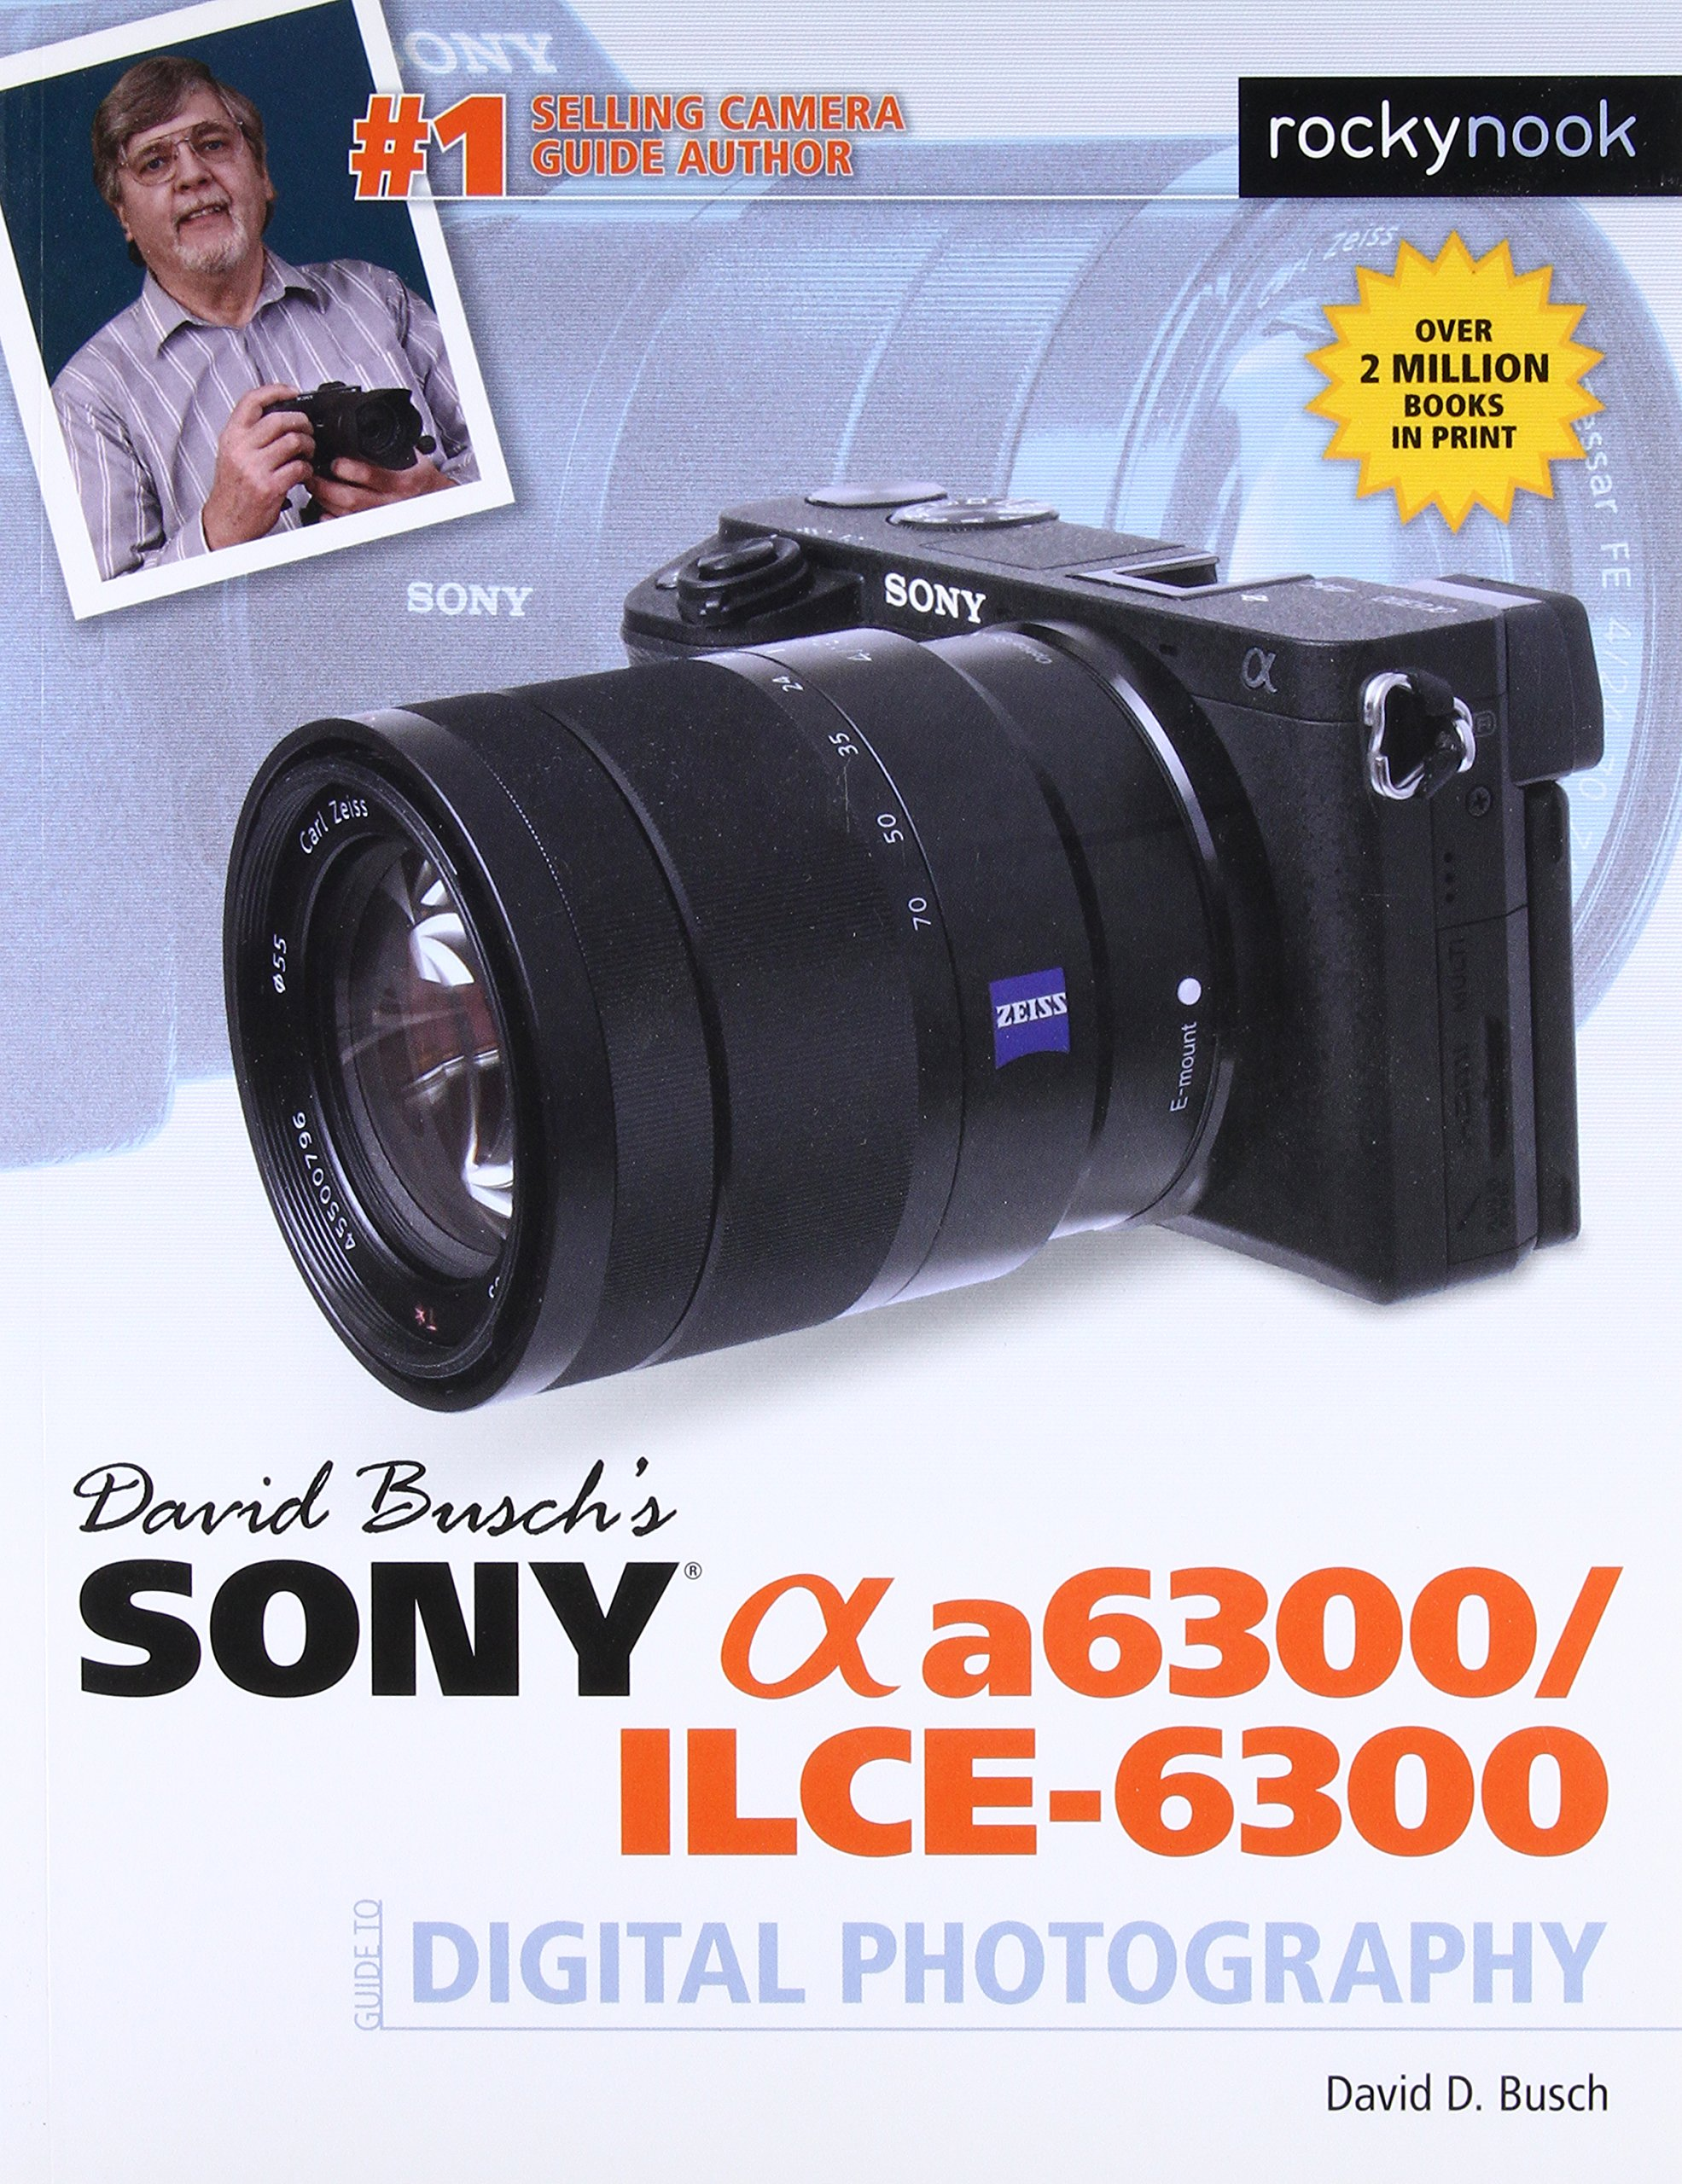 David Buschs ILCE 6300 Digital Photography product image